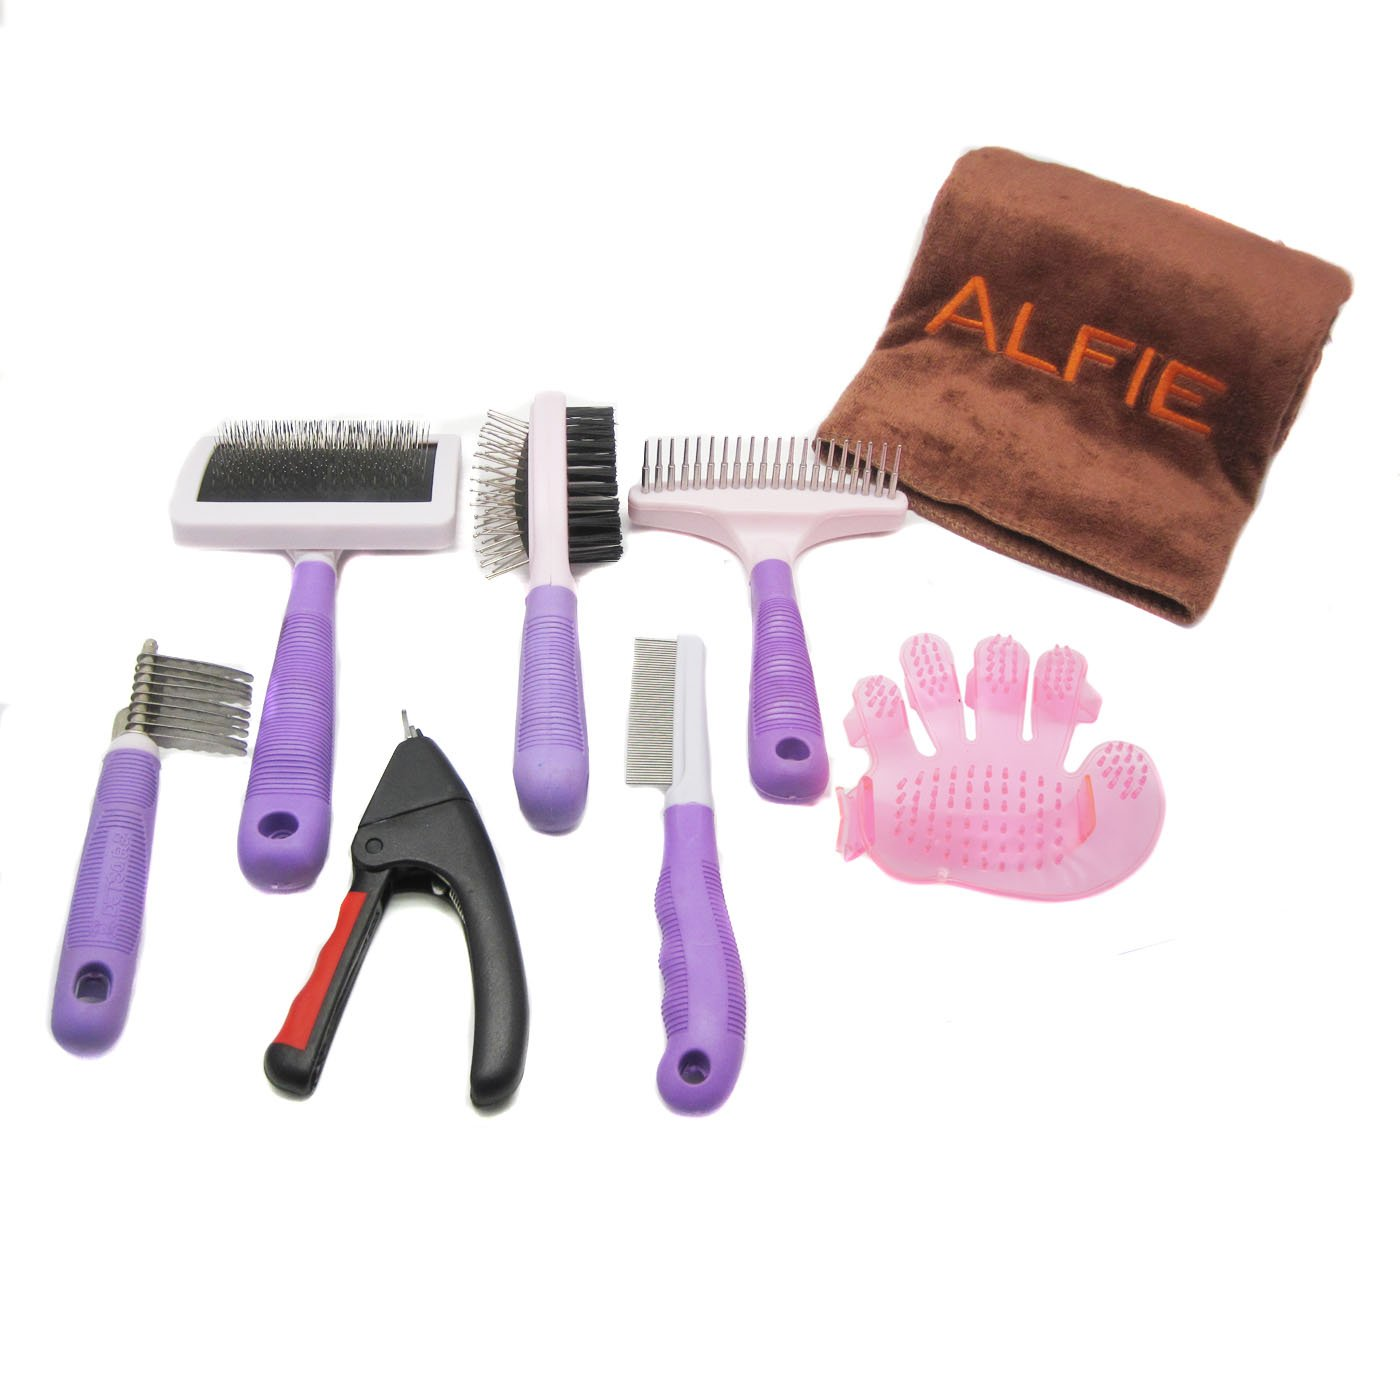 Alfie Pet by Petoga Couture - 7-piece Home Grooming Kit with Microfiber Fast-Dry Towel - Double-Sided Brush, Flea Comb, Nail Trimmer, Slicker Comb, Dematting Tool, Undercoat Rake, Bath Massage Glove